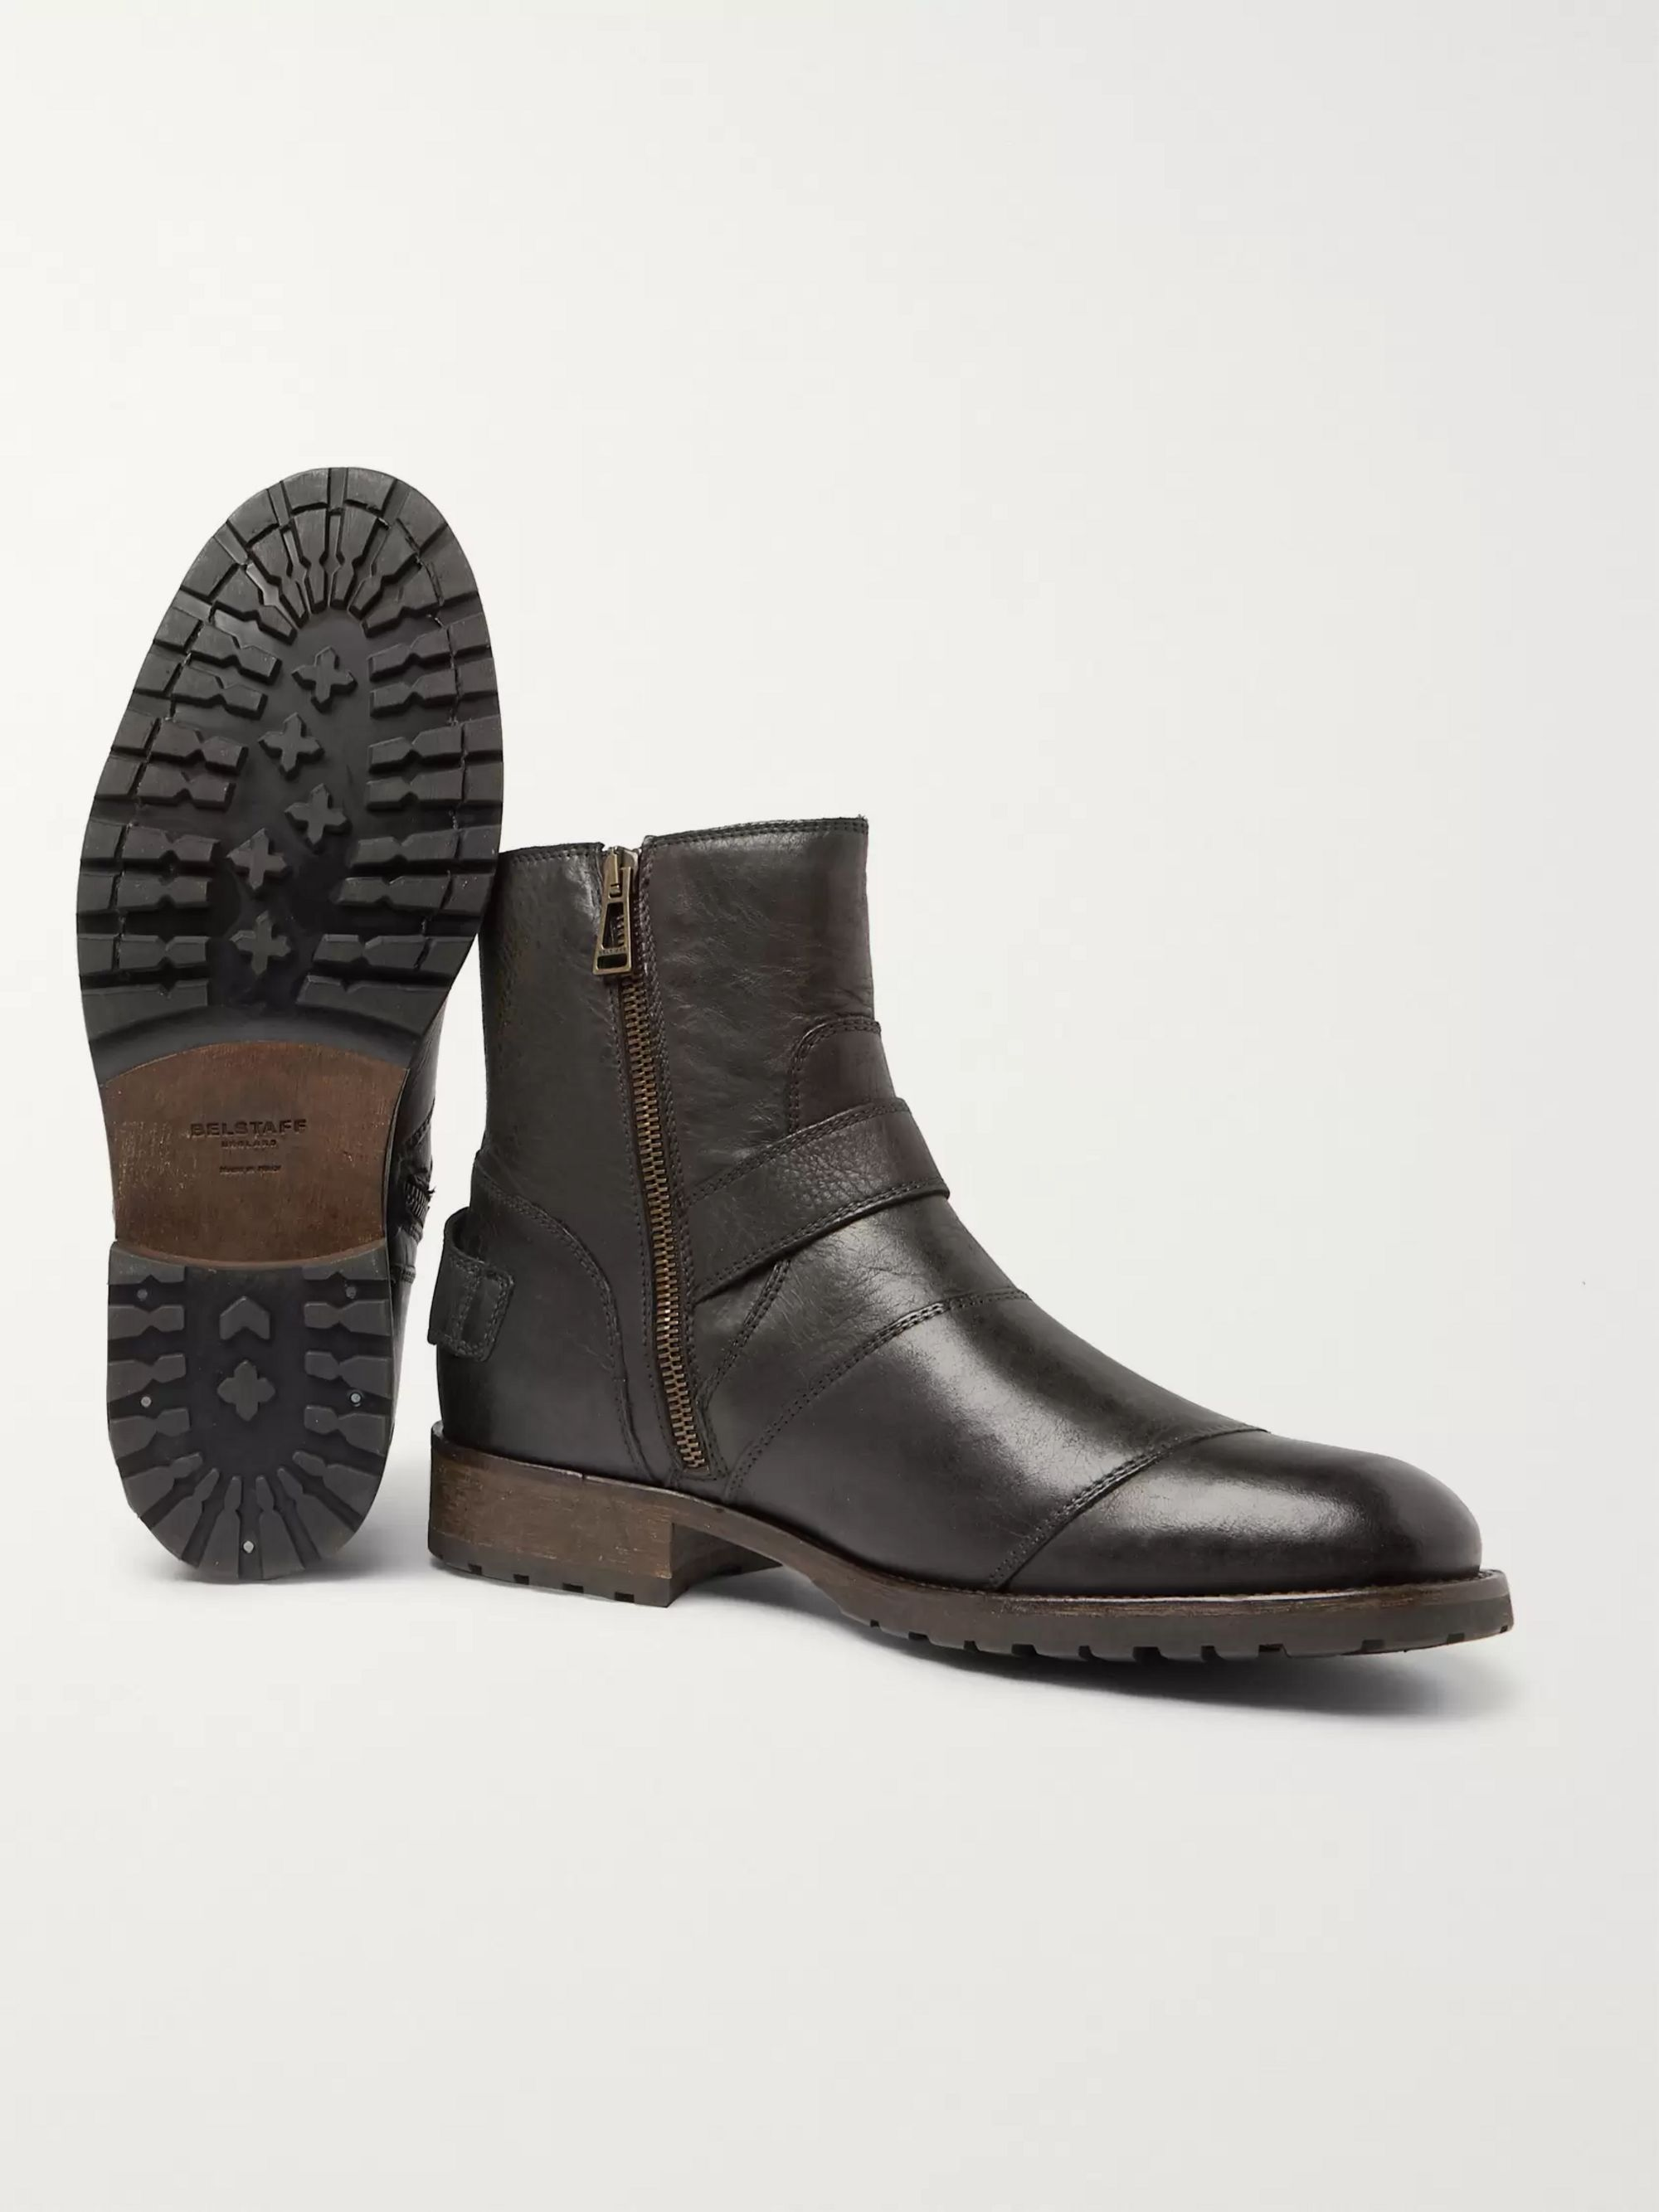 Belstaff Trialmaster Distressed Leather Boots